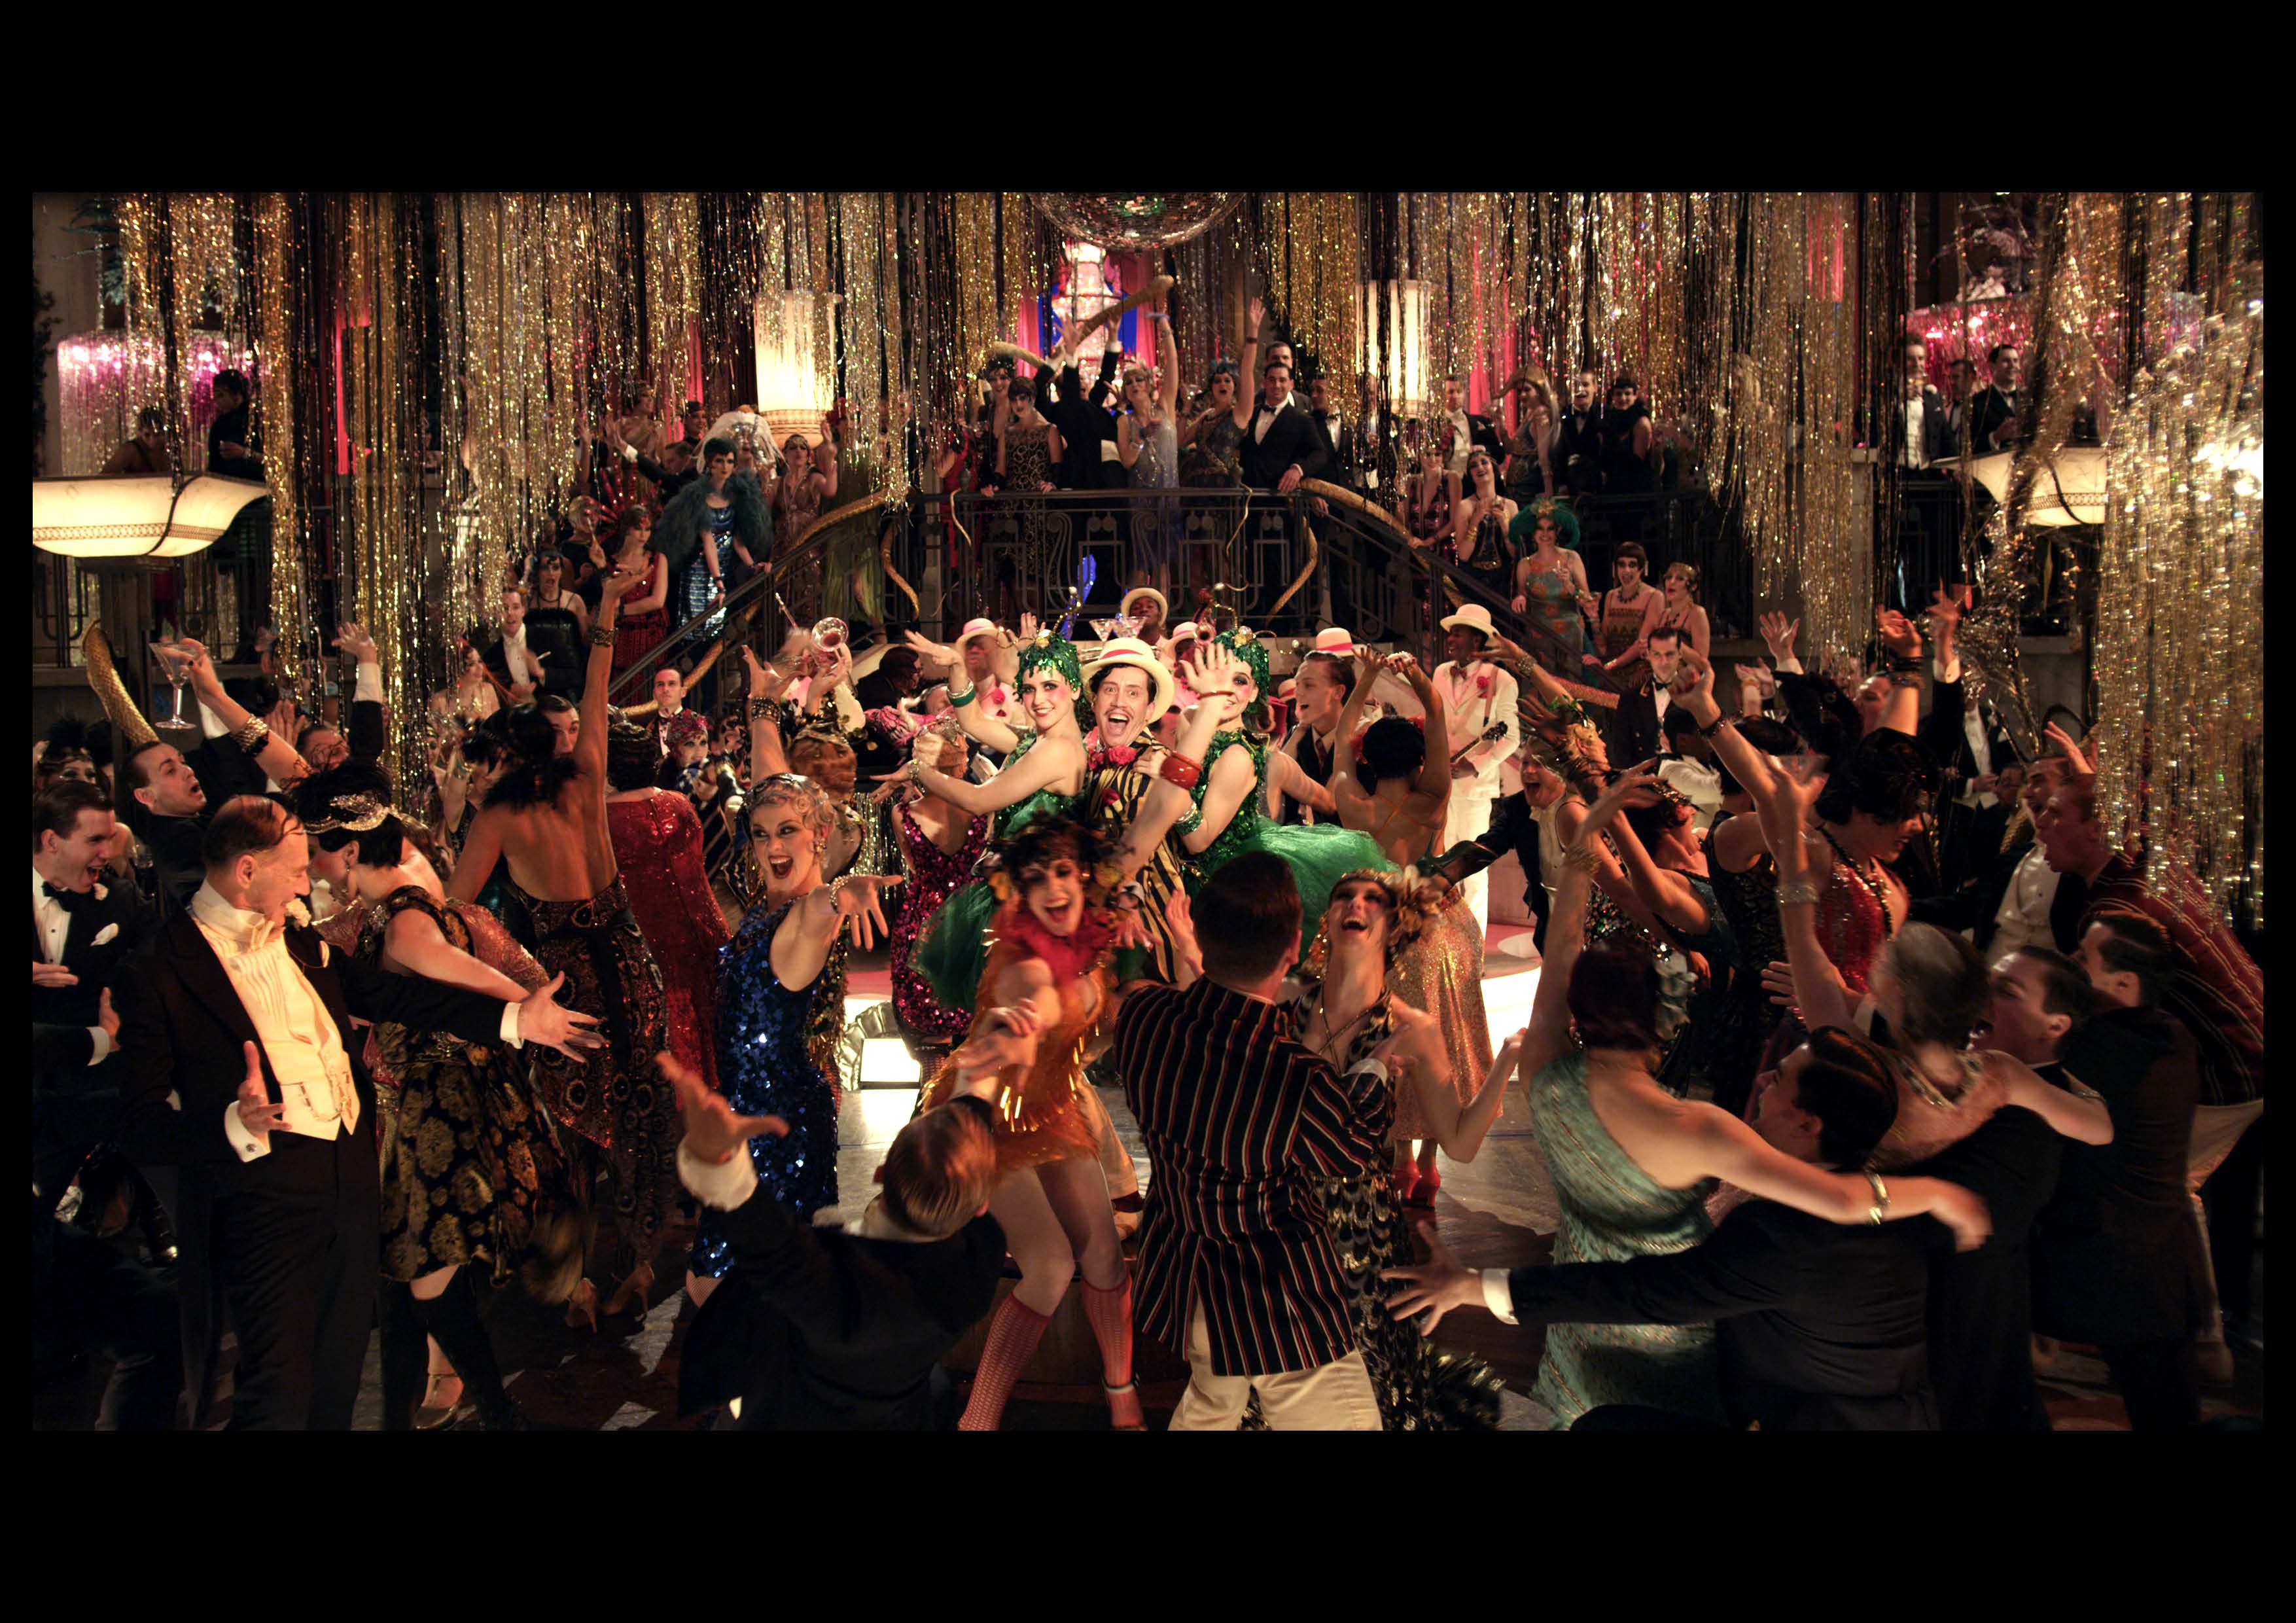 the great gatsby party scene The great gatsby was set during prohibition, but that didn't prevent liquor from flowing freely at jay gatsby's hellraising social events use our party calculator to ensure your bar stays fully stocked until your guests go home.